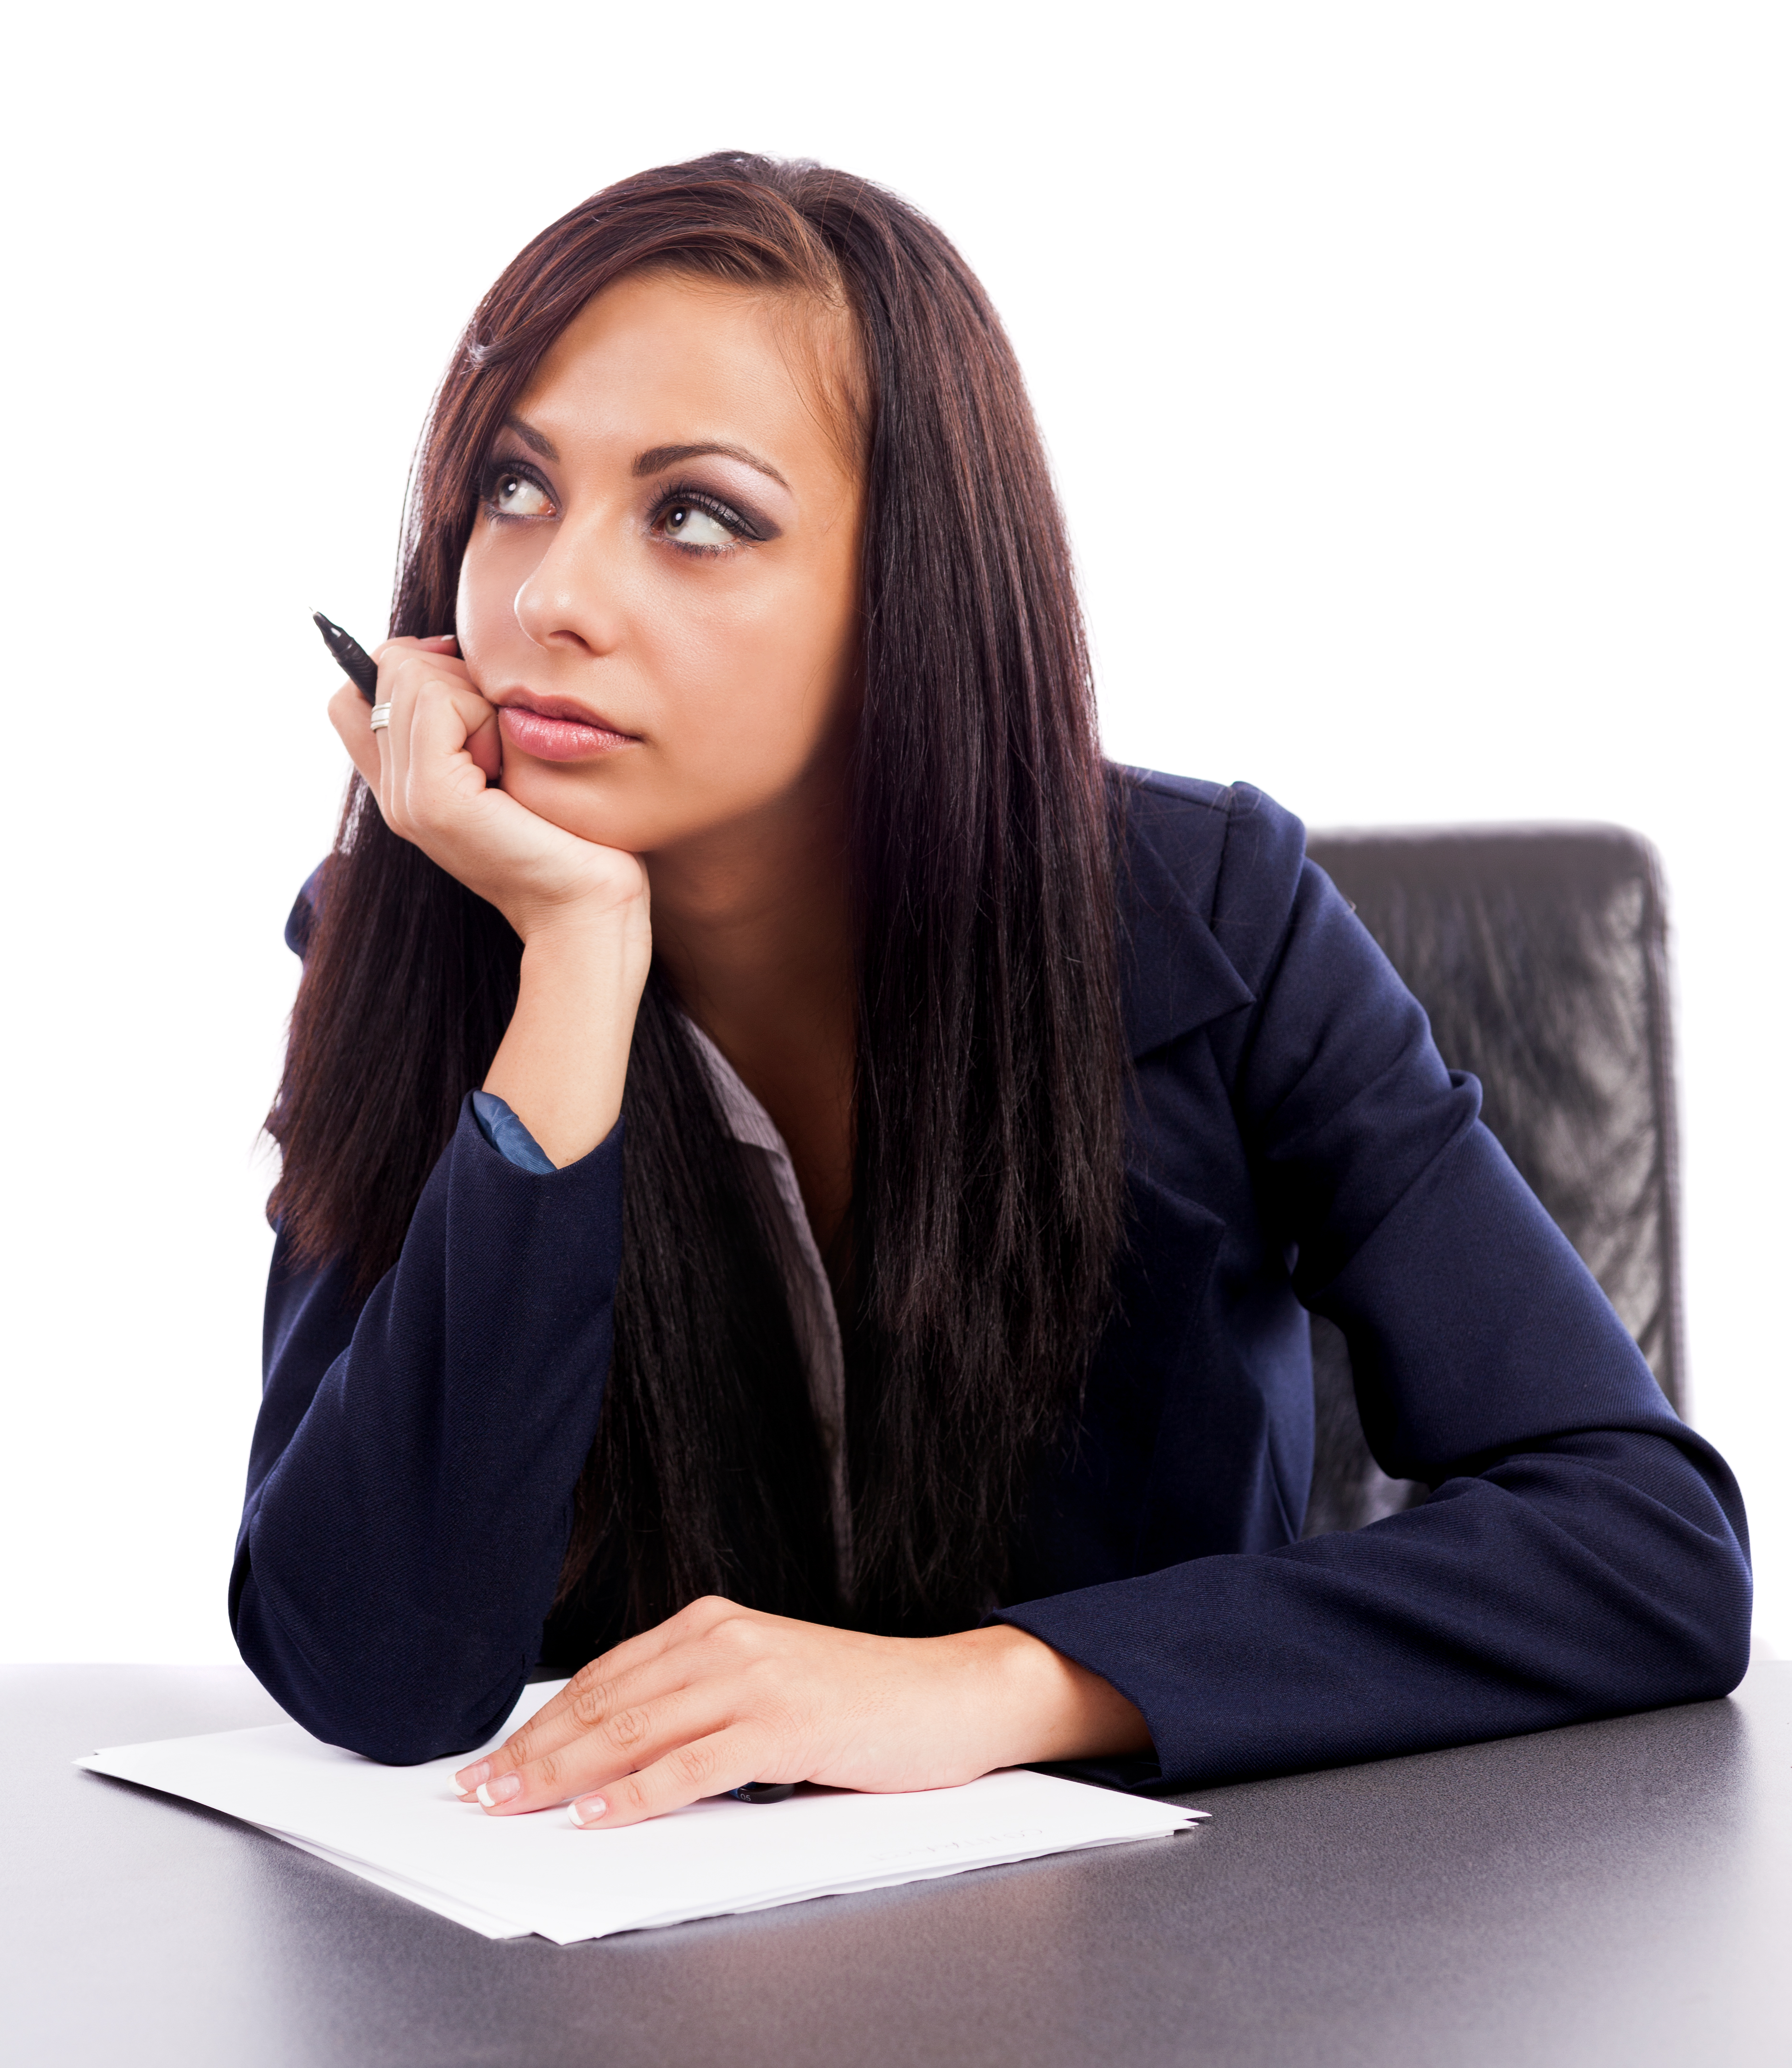 Latin businesswoman thinking while sitting at desk